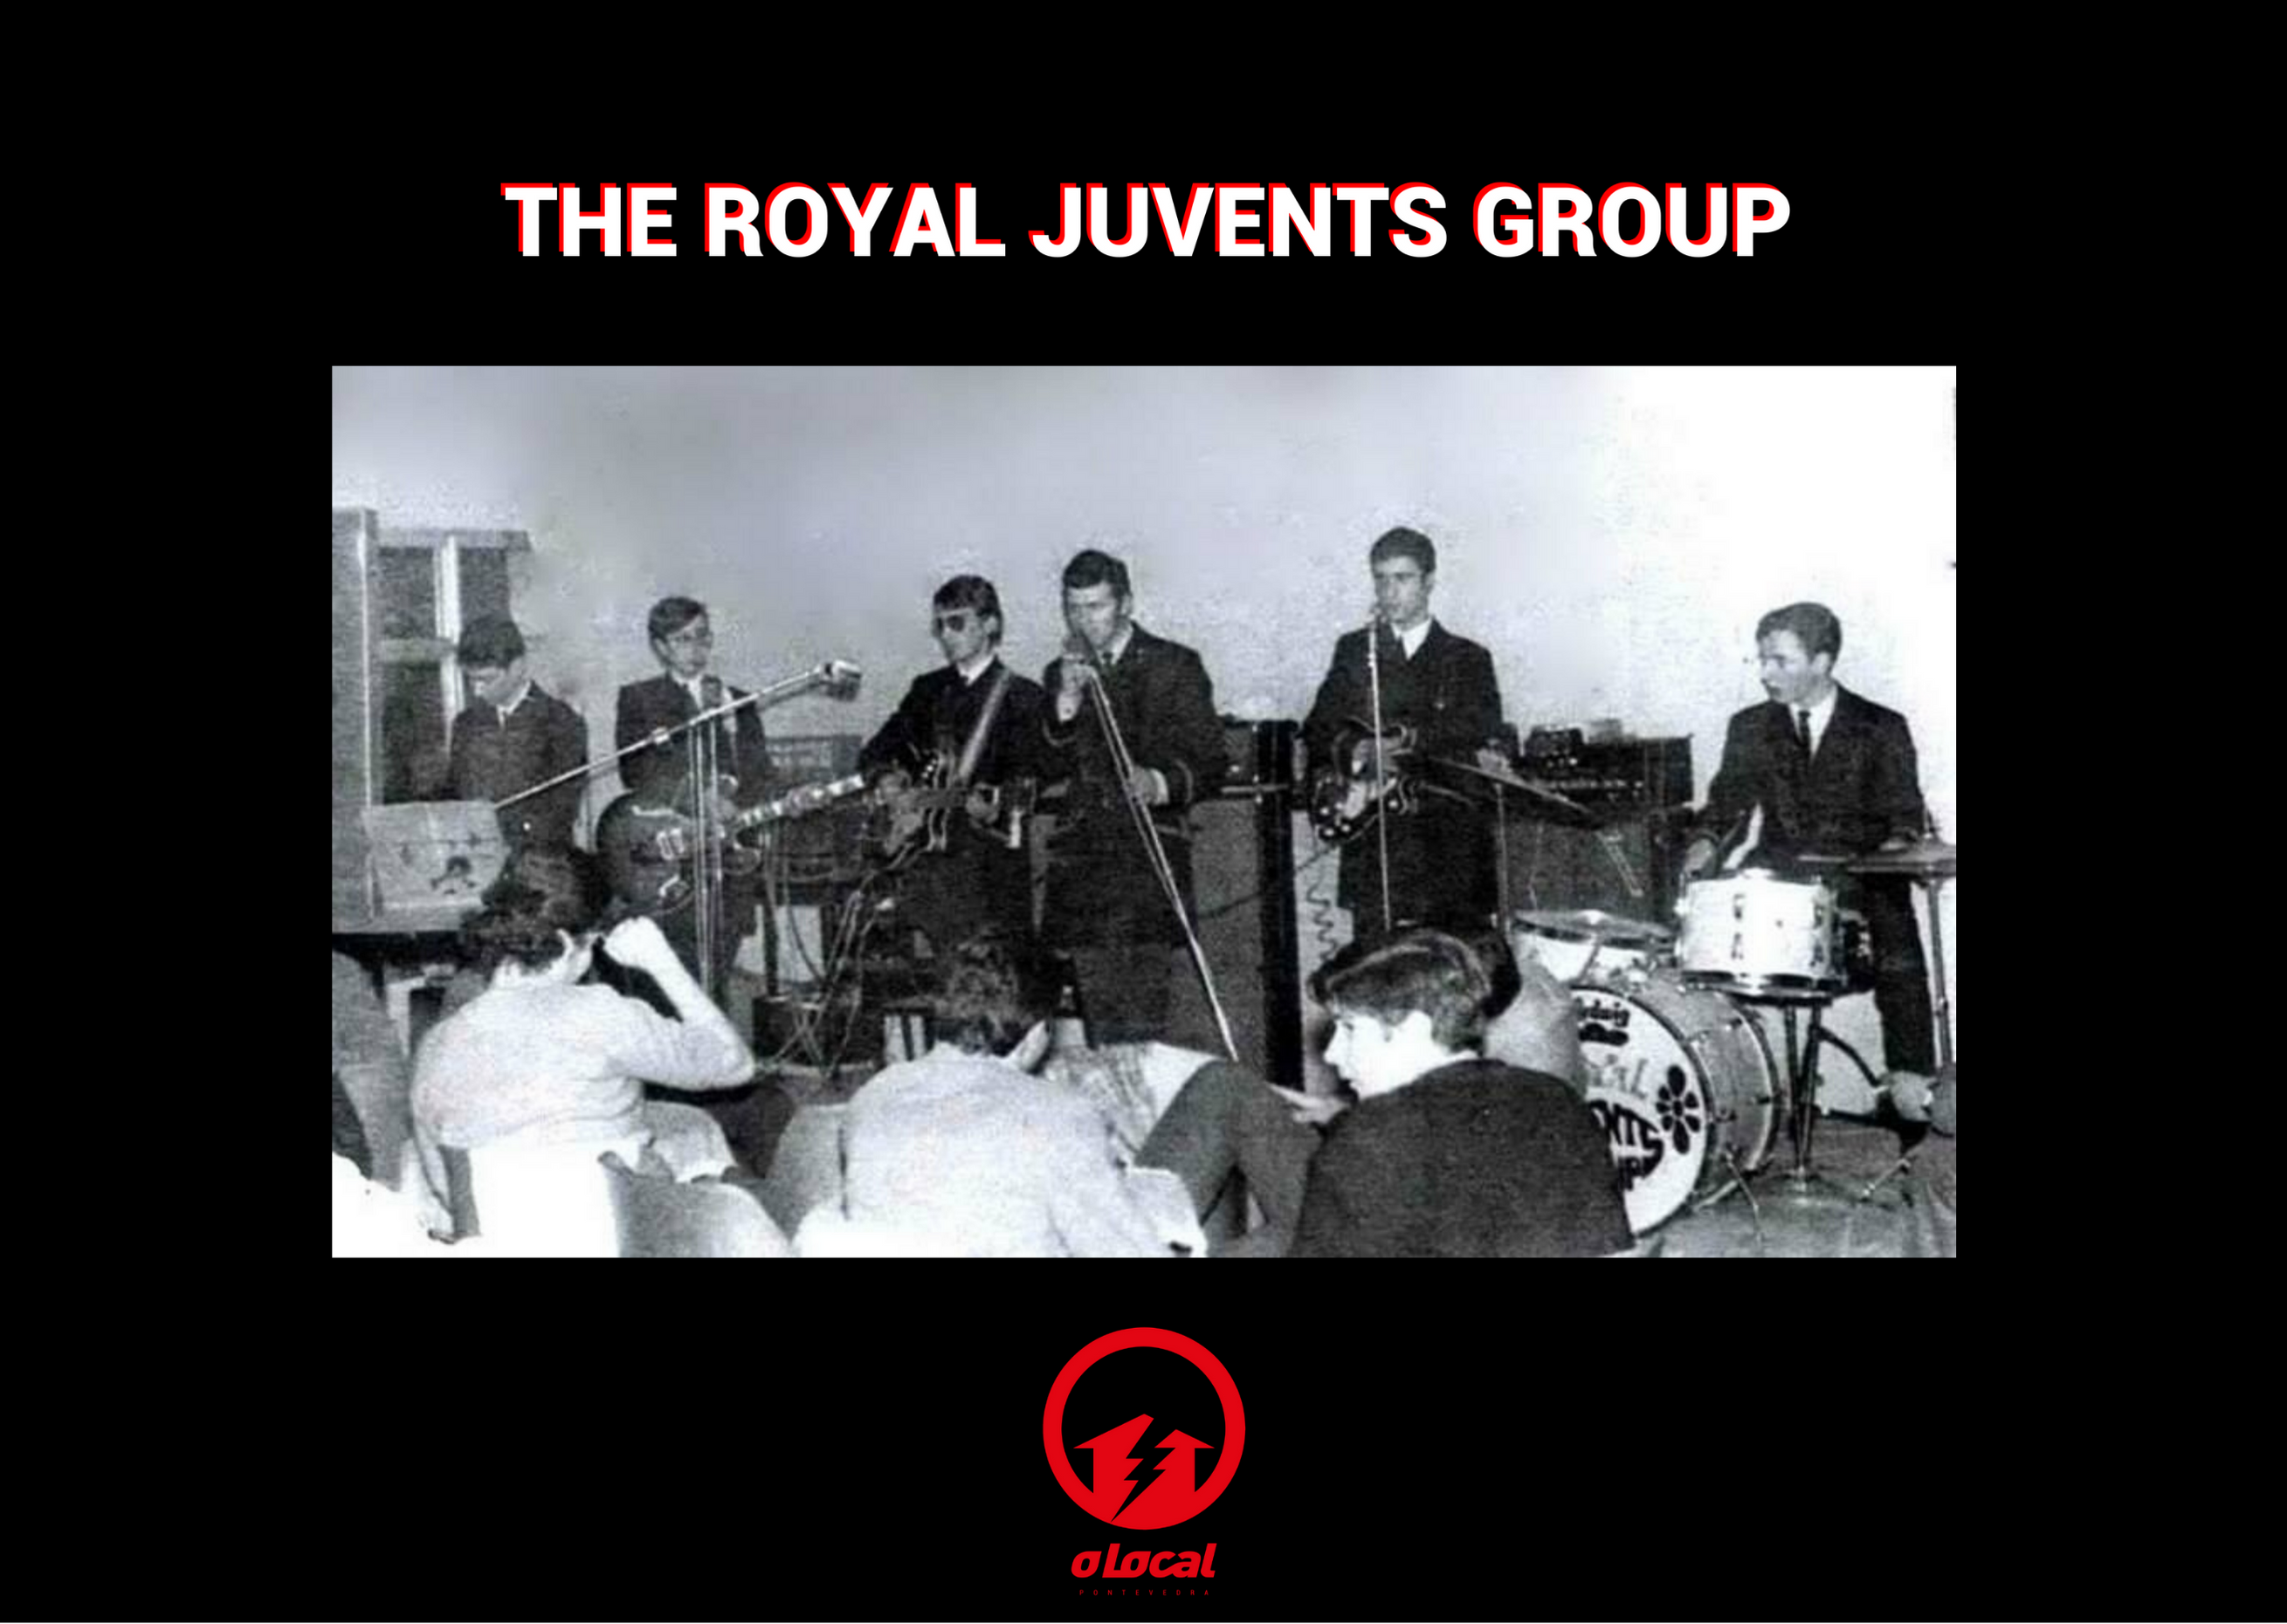 CLASE DE HISTORIA 4: THE ROYAL JUVENTS GROUP